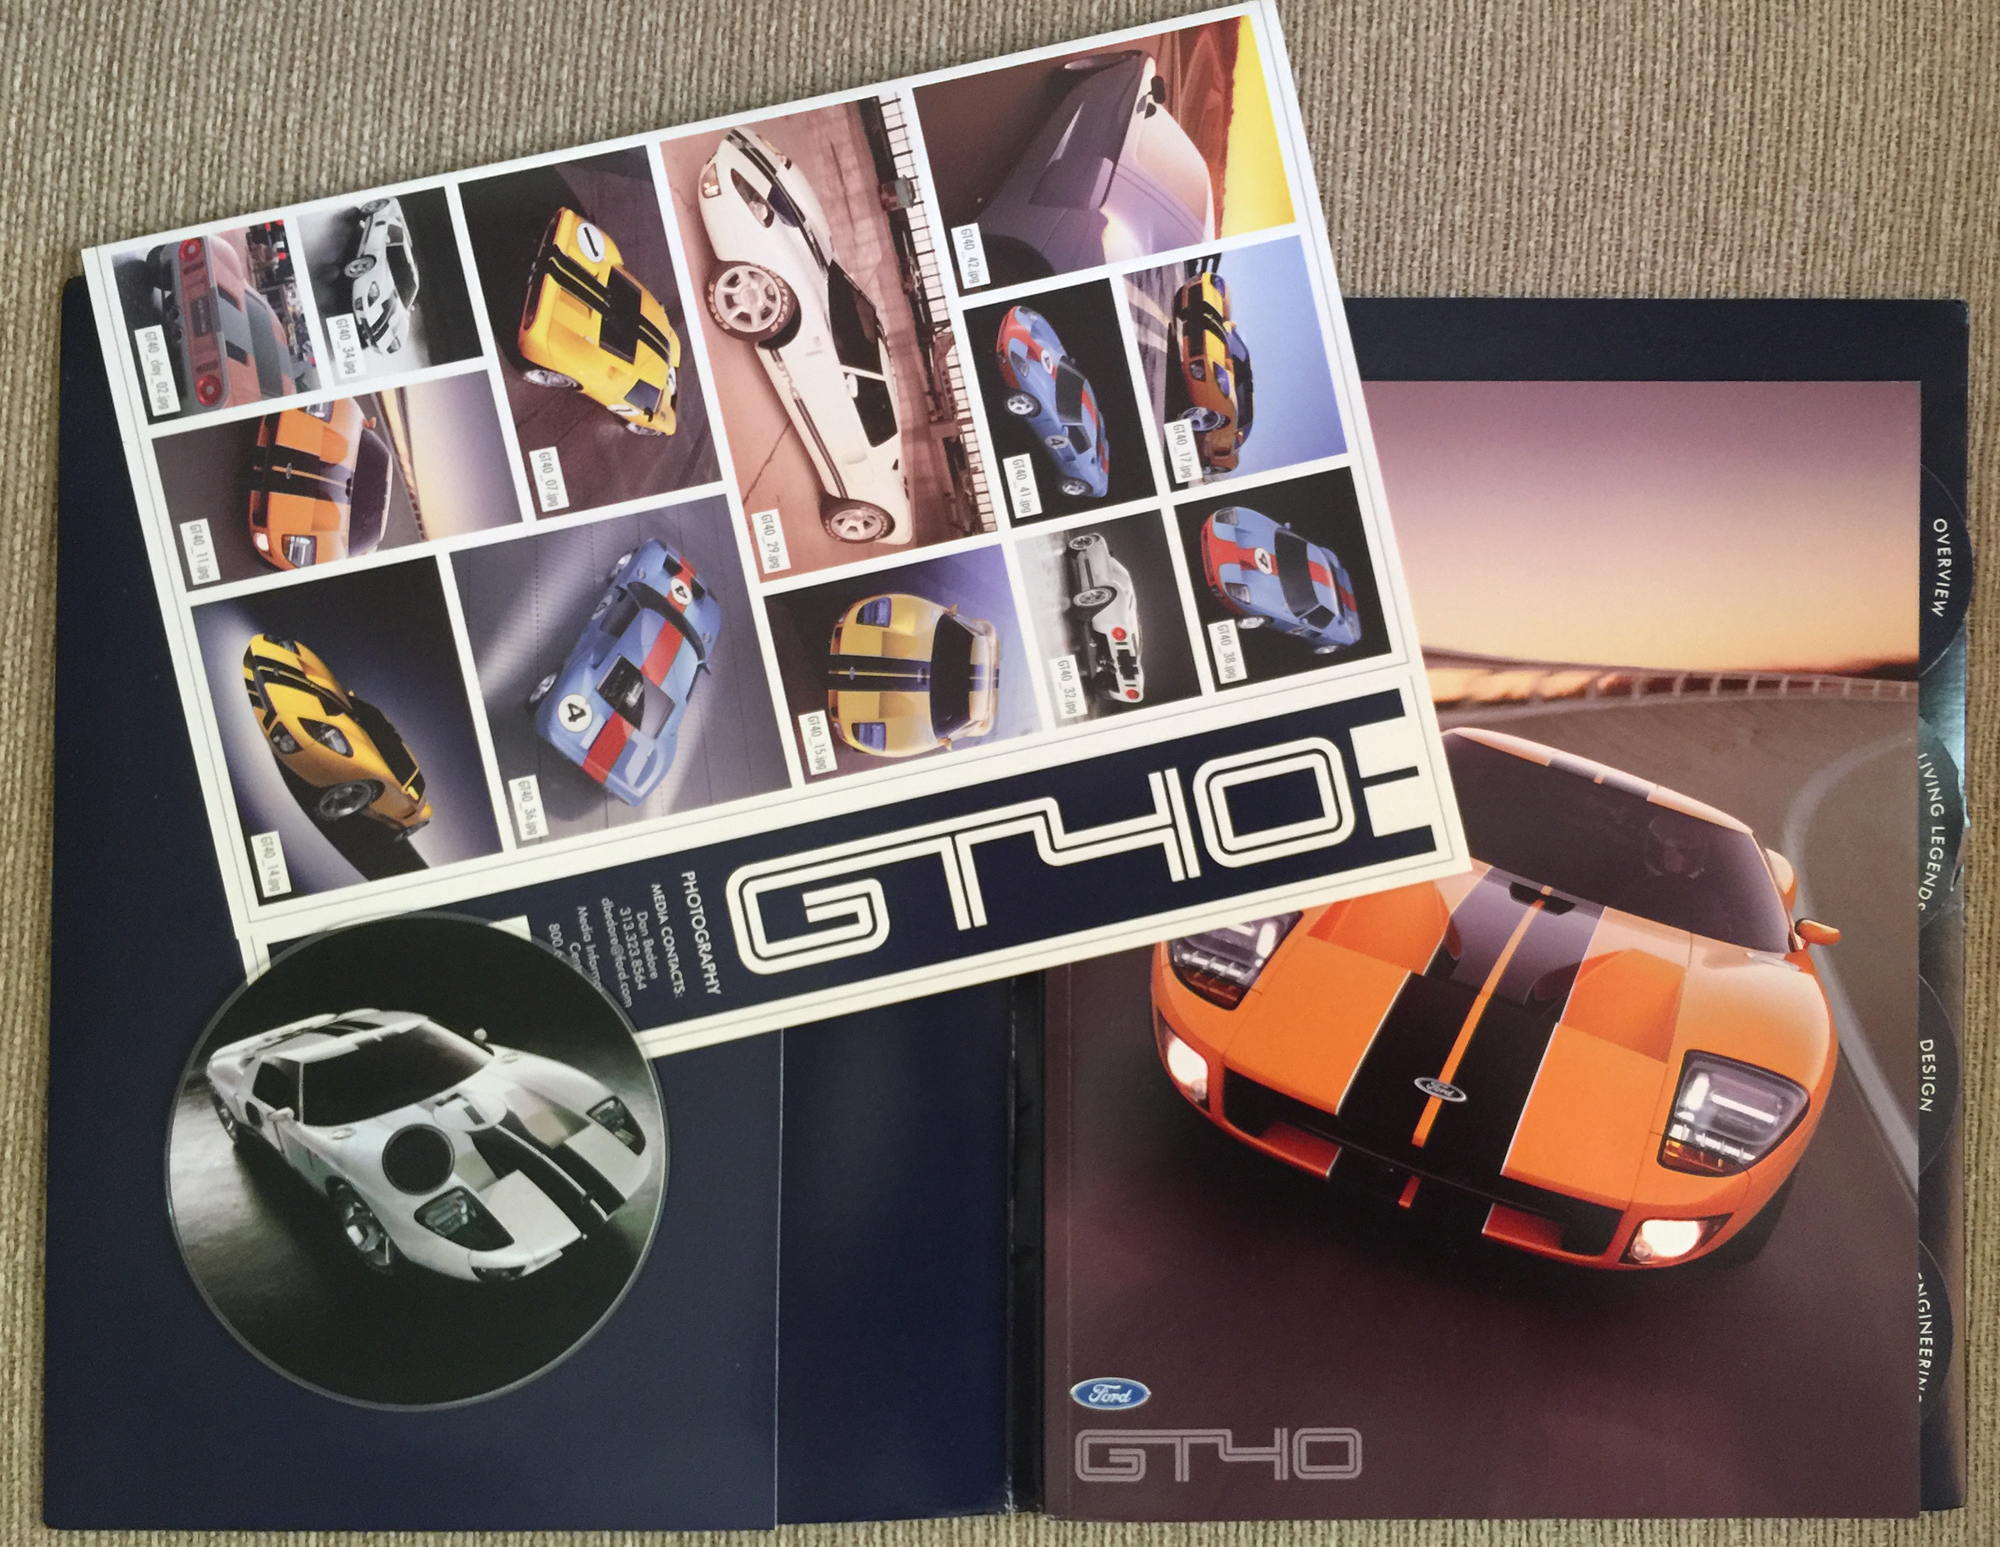 Ford GT40 press kit